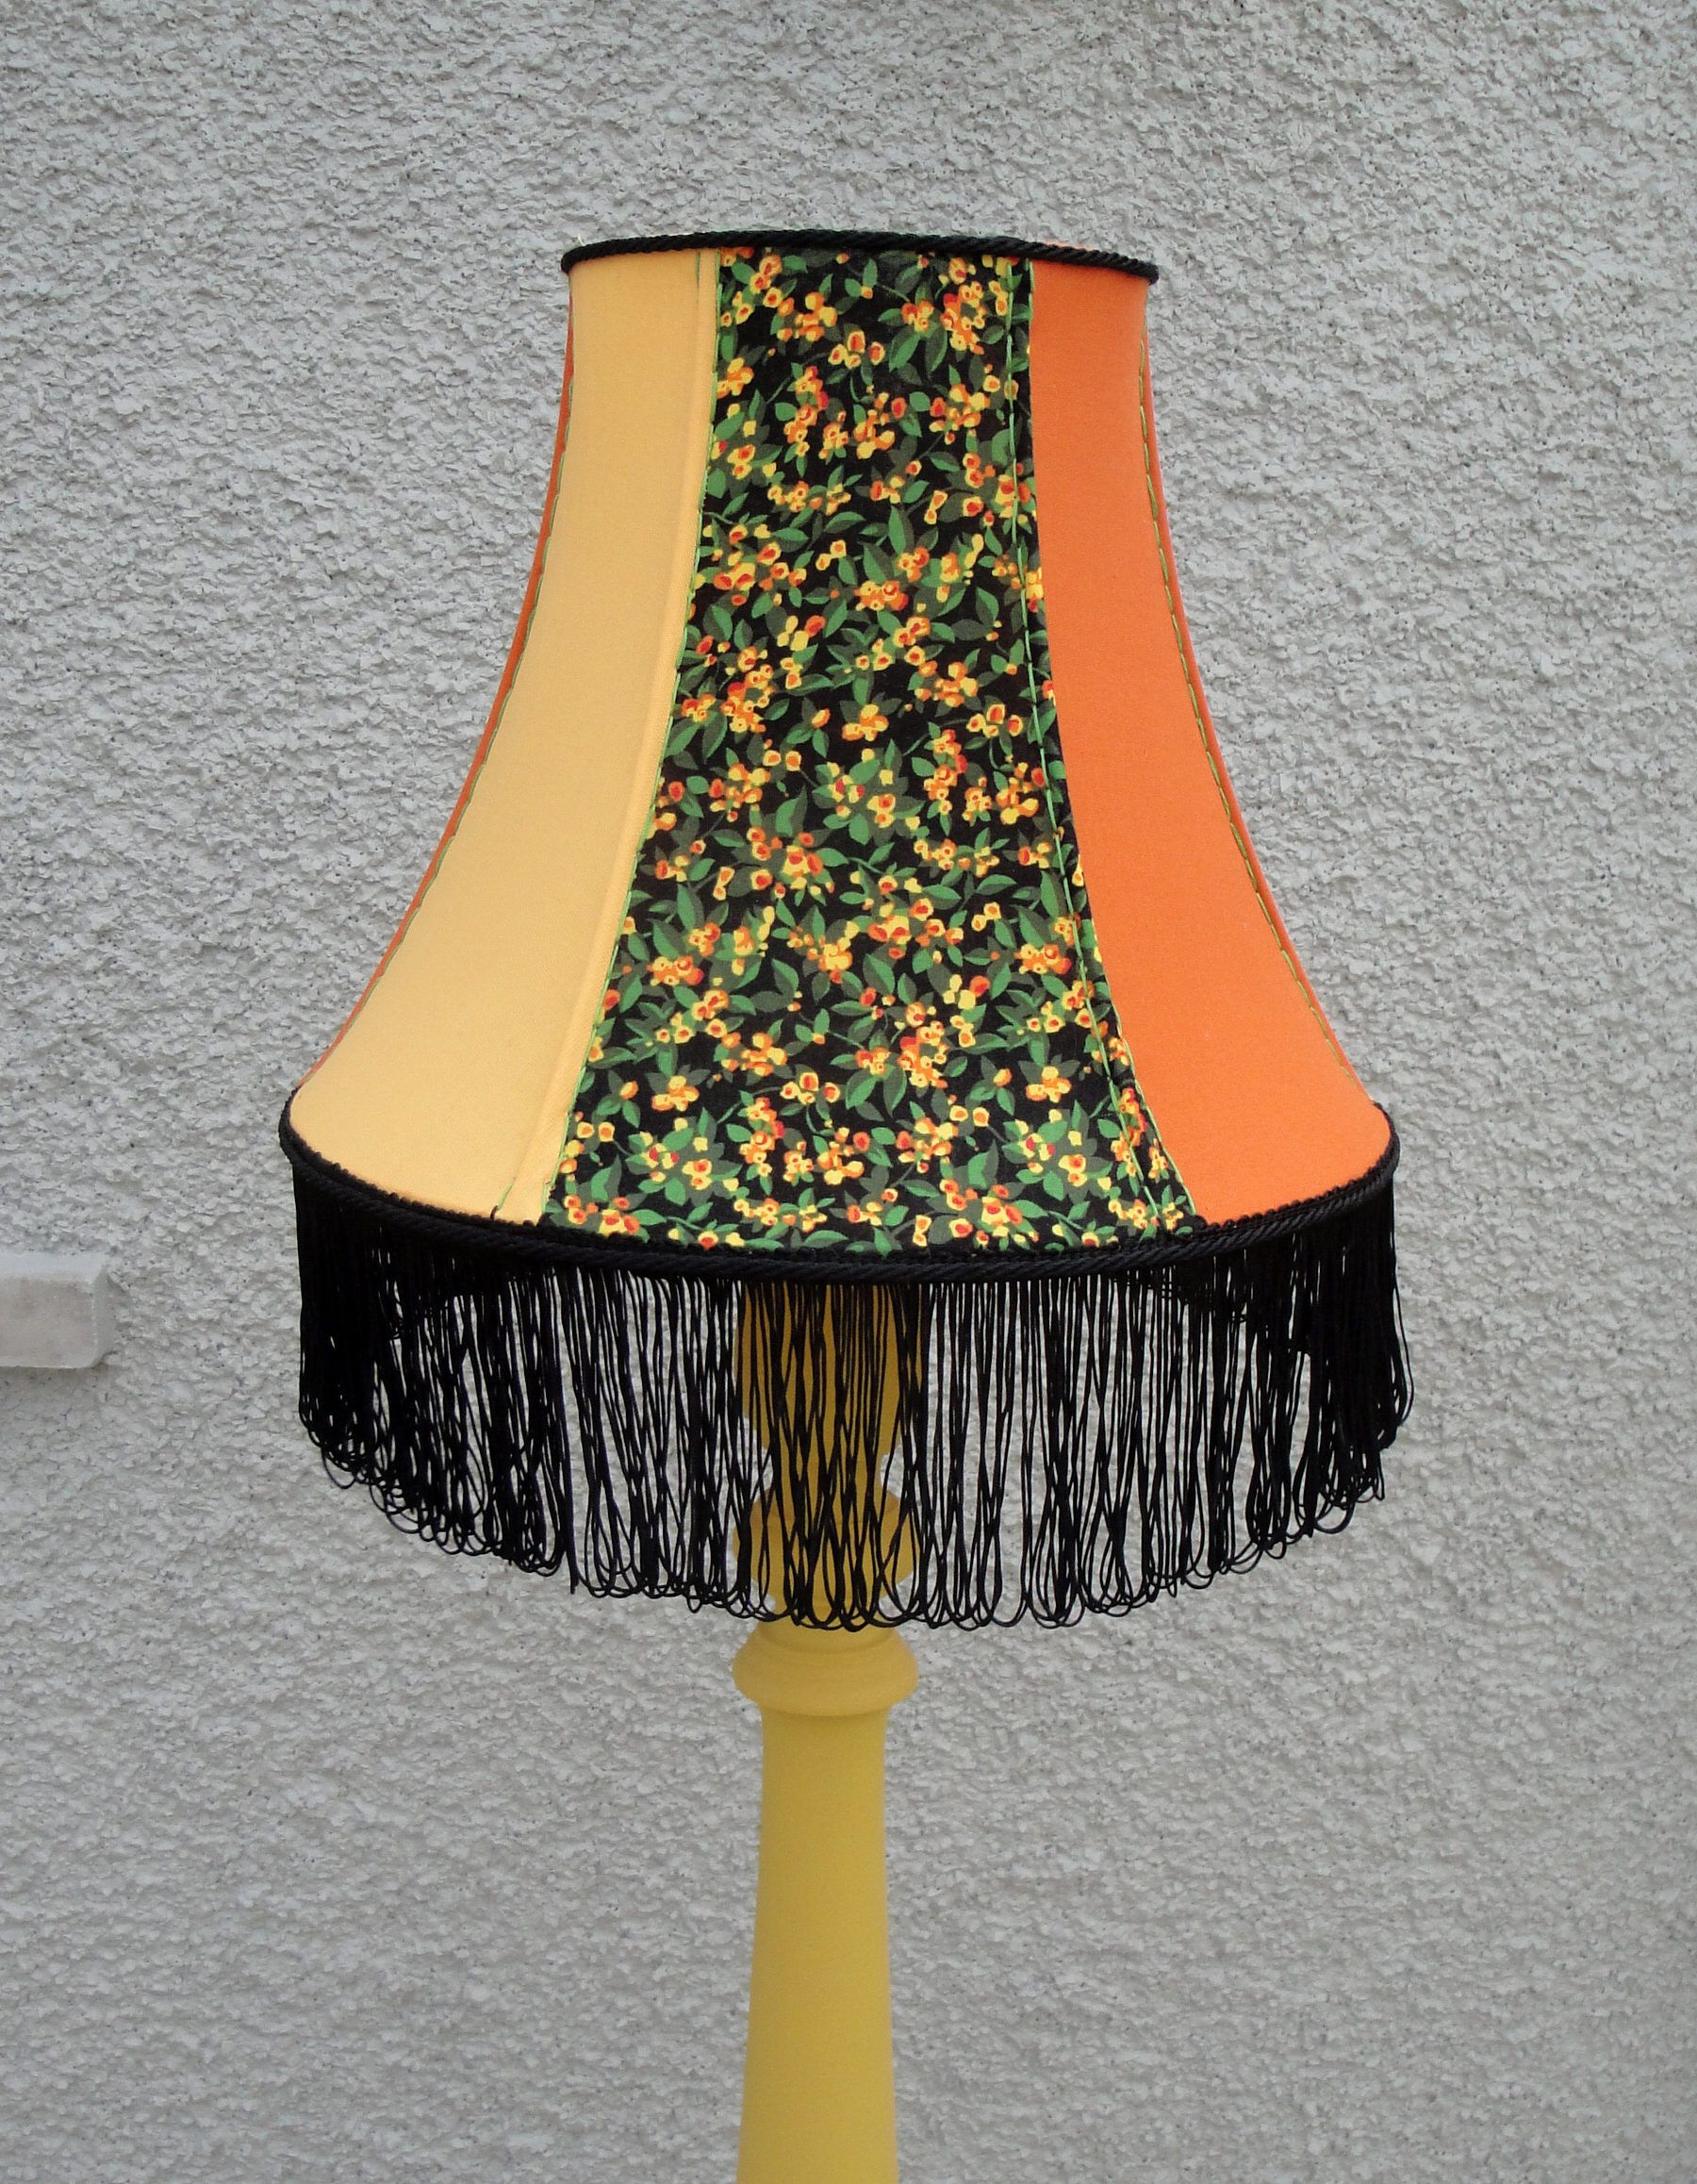 Vibrant Handmade Round Bell Lampshade In Orange And Yellow Home Decor By Katiemadelampshades On E Antique Lamp Shades Creative Lamp Shades Hanging Lamp Shade